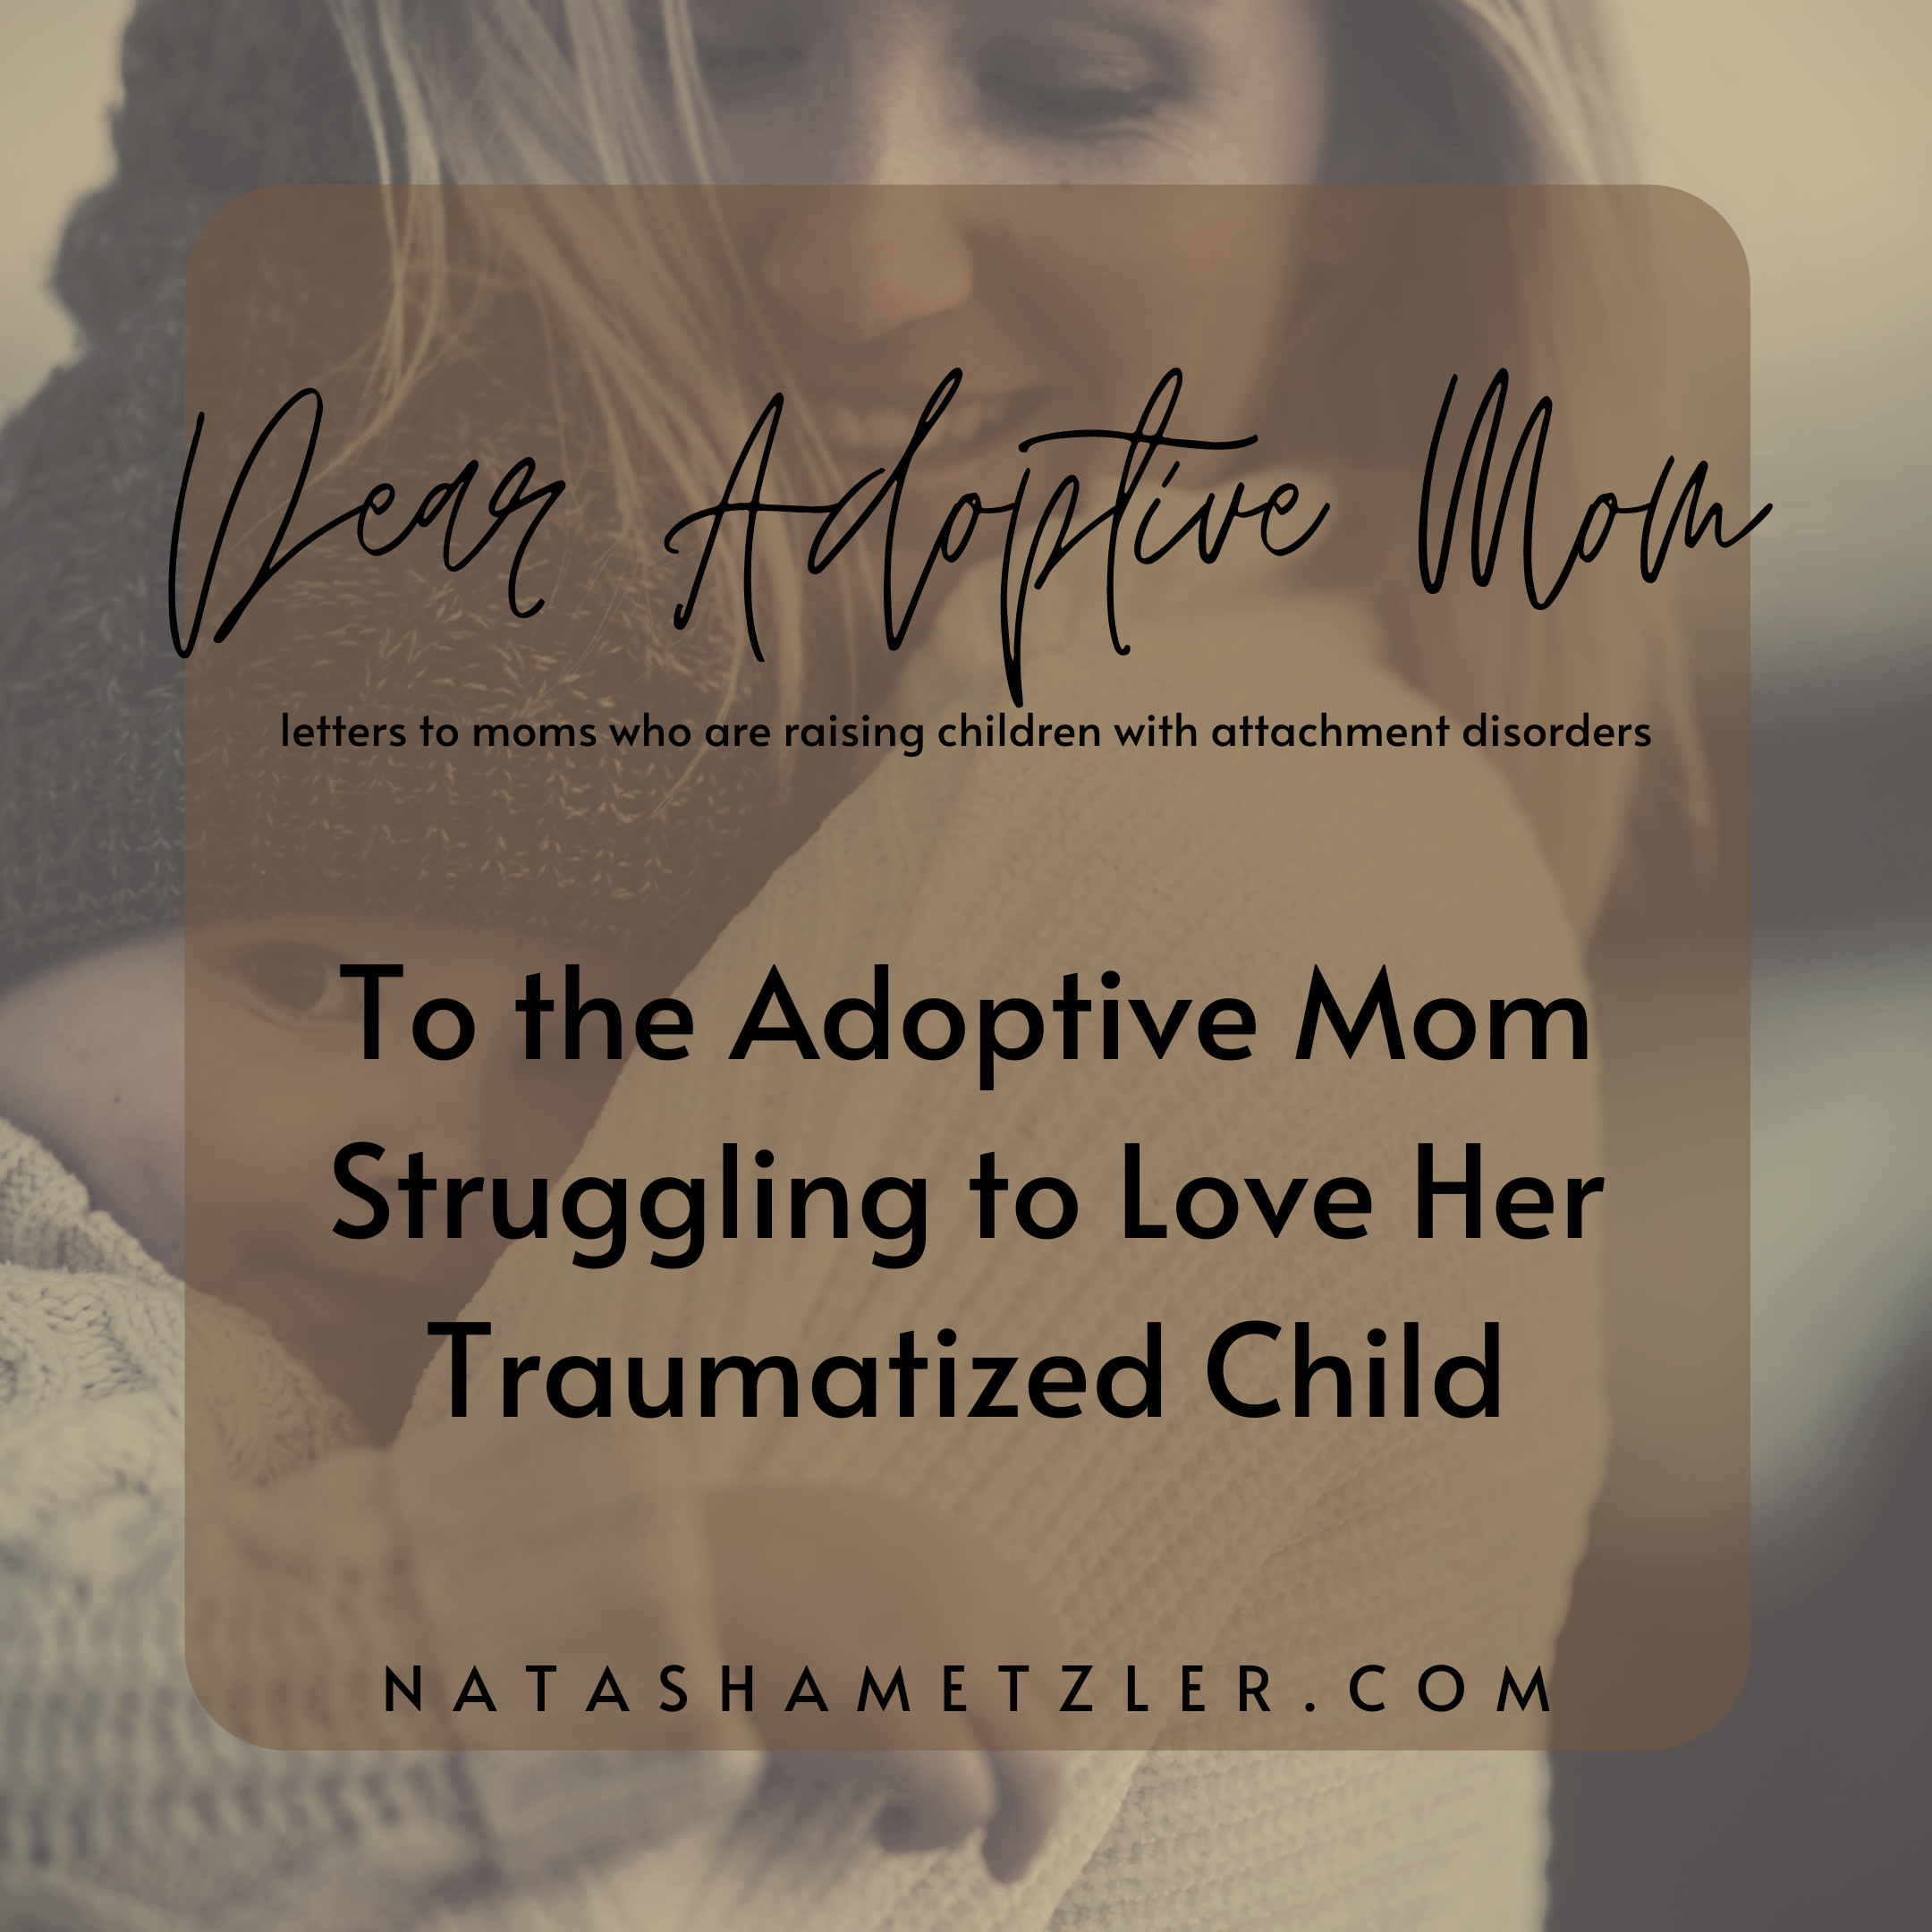 To the Adoptive Mom Struggling to Love Her Traumatized Child